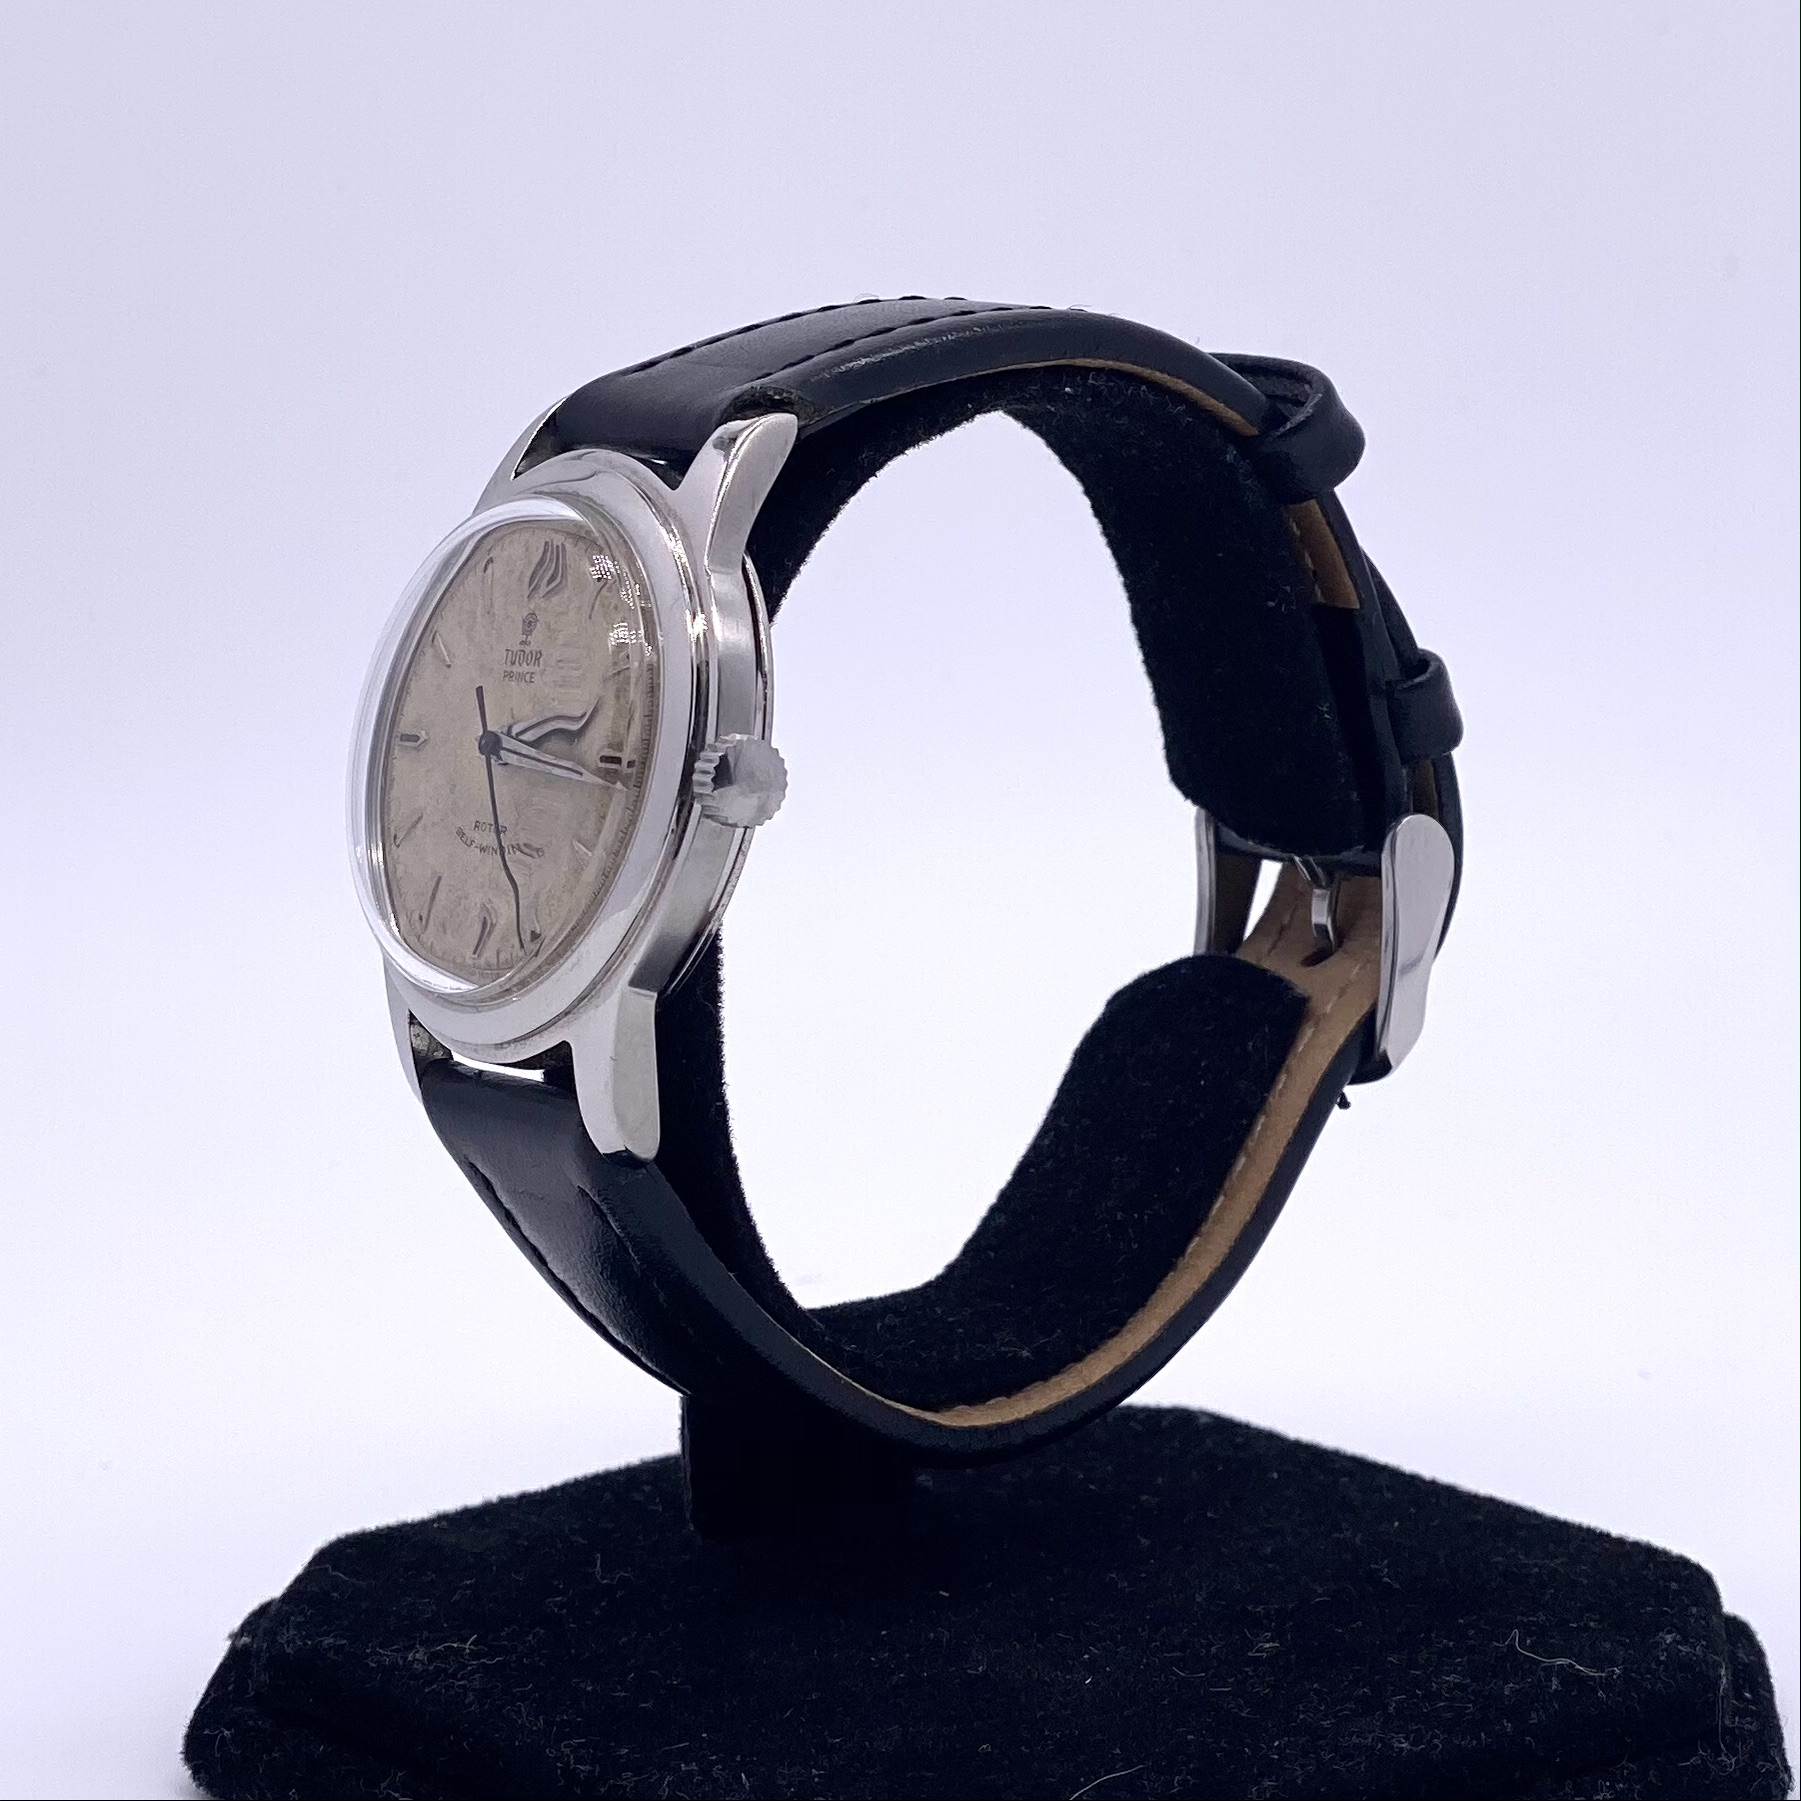 Tudor Prince Vintage Automatic Watch ref 1431 - Image 2 of 3